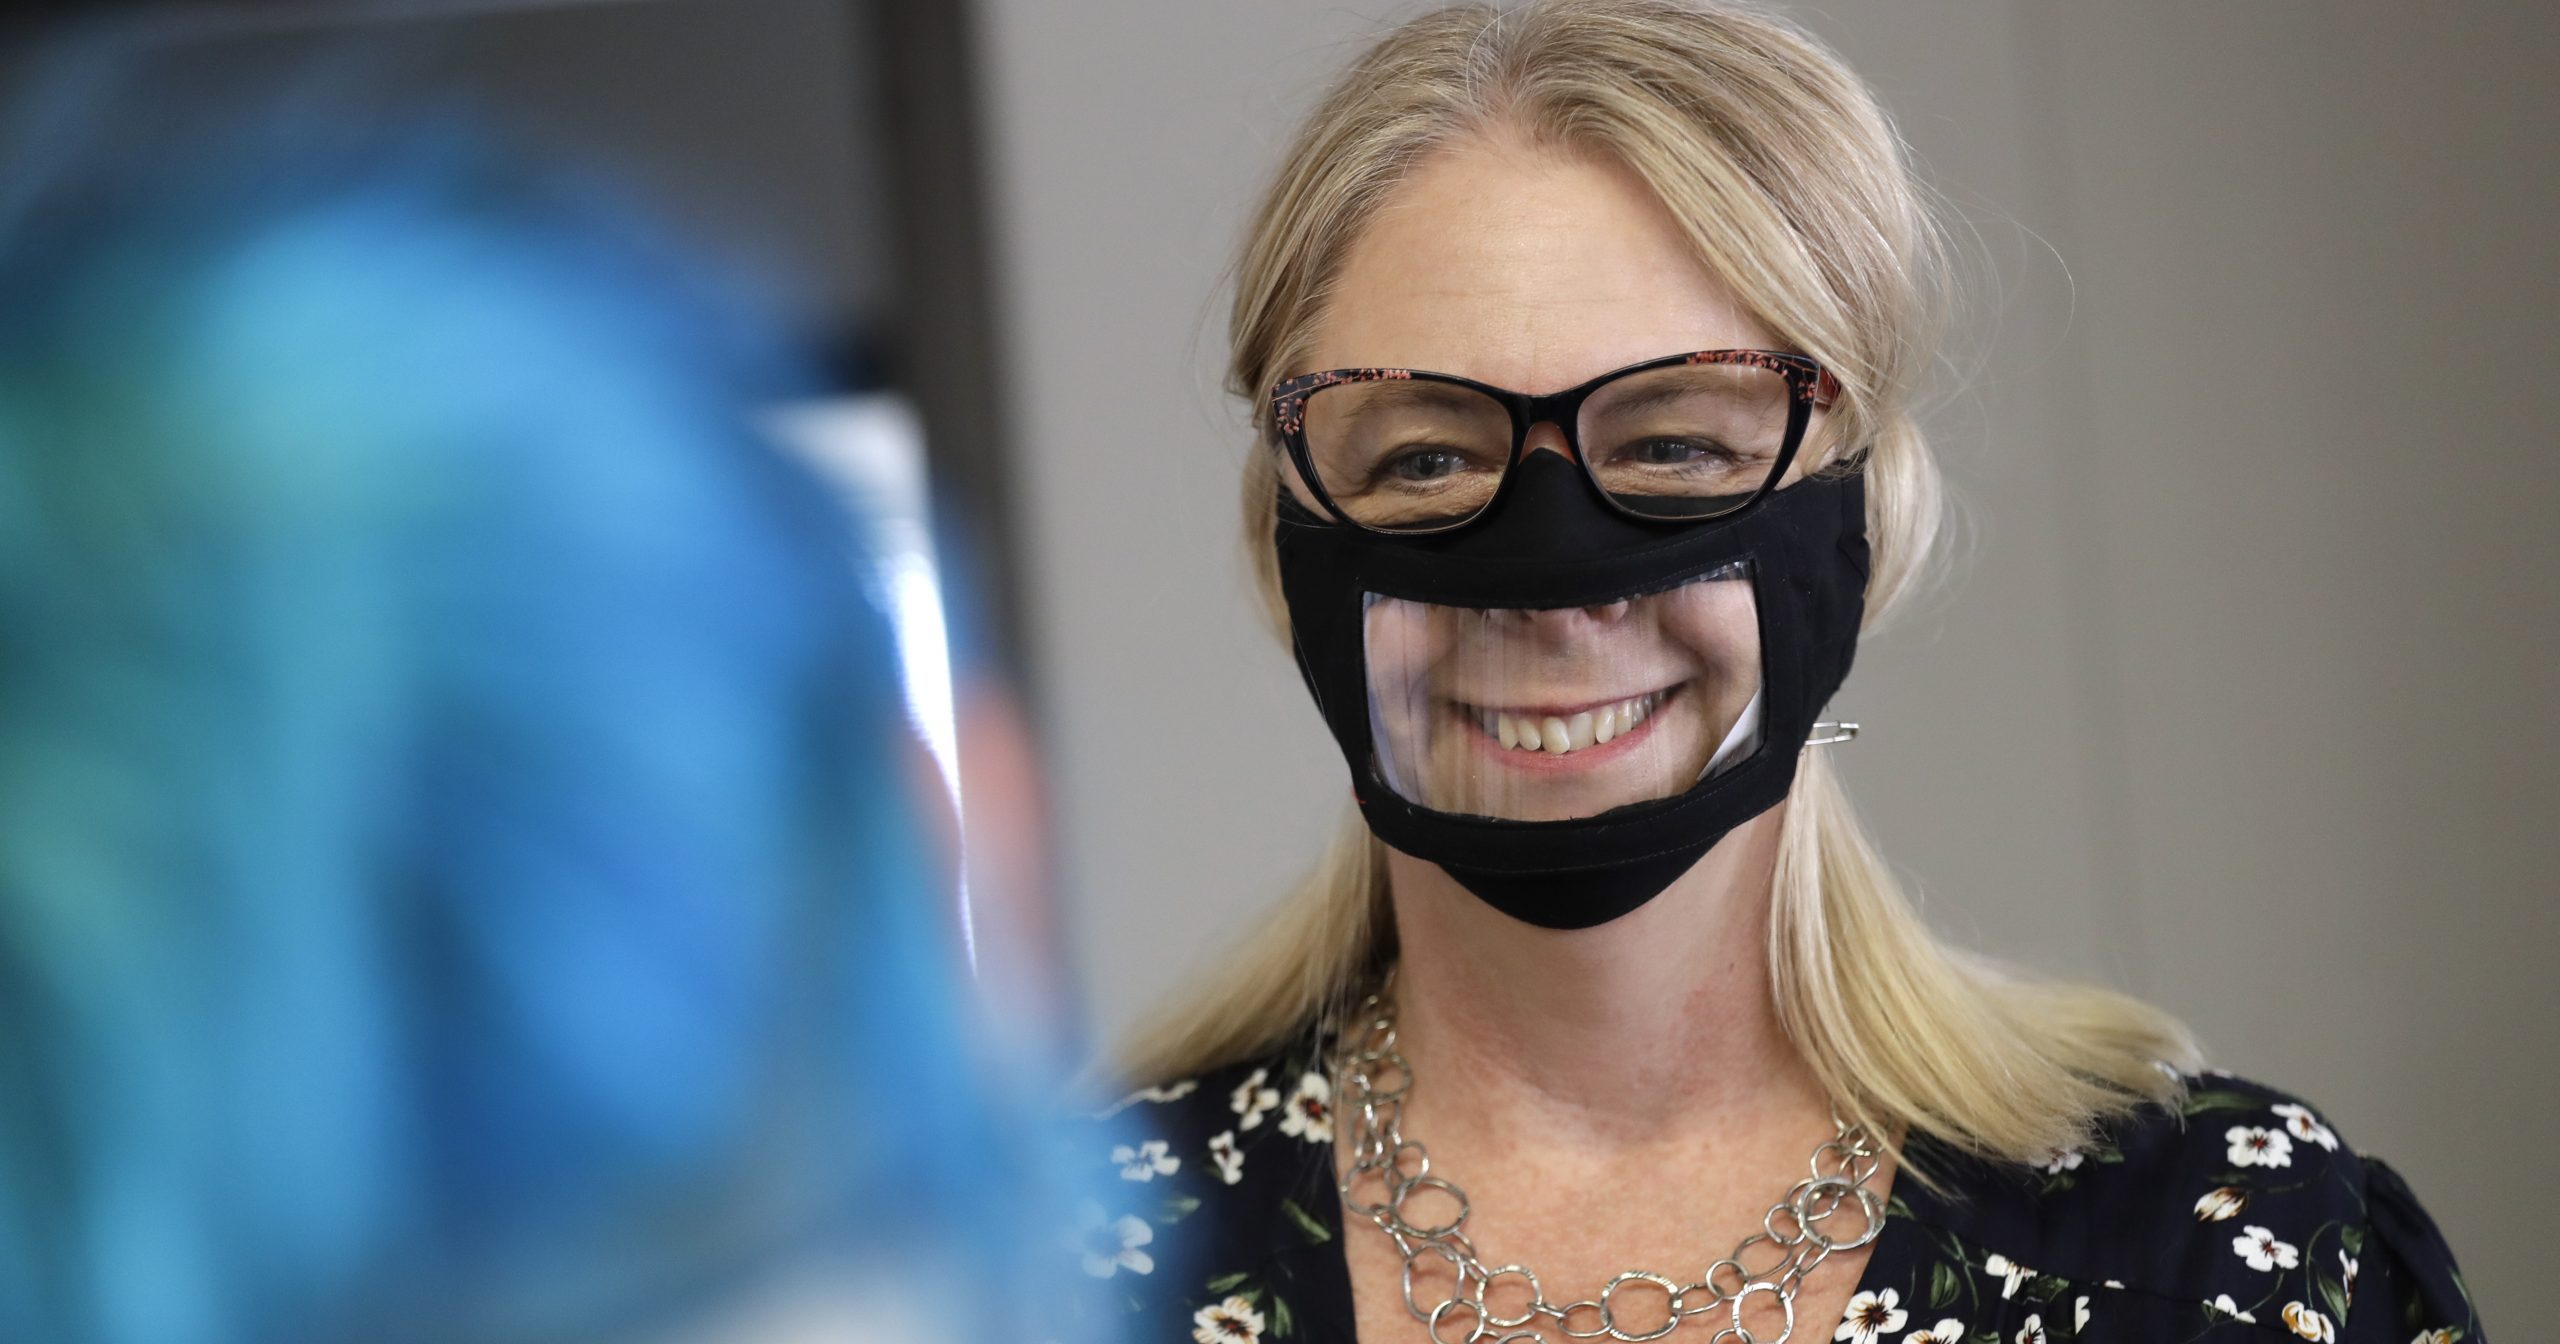 In this June 3, 2020, photo, Chris LaZich of Fleet Science Center wears a mask with a window in San Diego. Face coverings are making it hard for people who read lips to communicate, which has spurred a slew of startups making masks with plastic windows to show one's mouth.